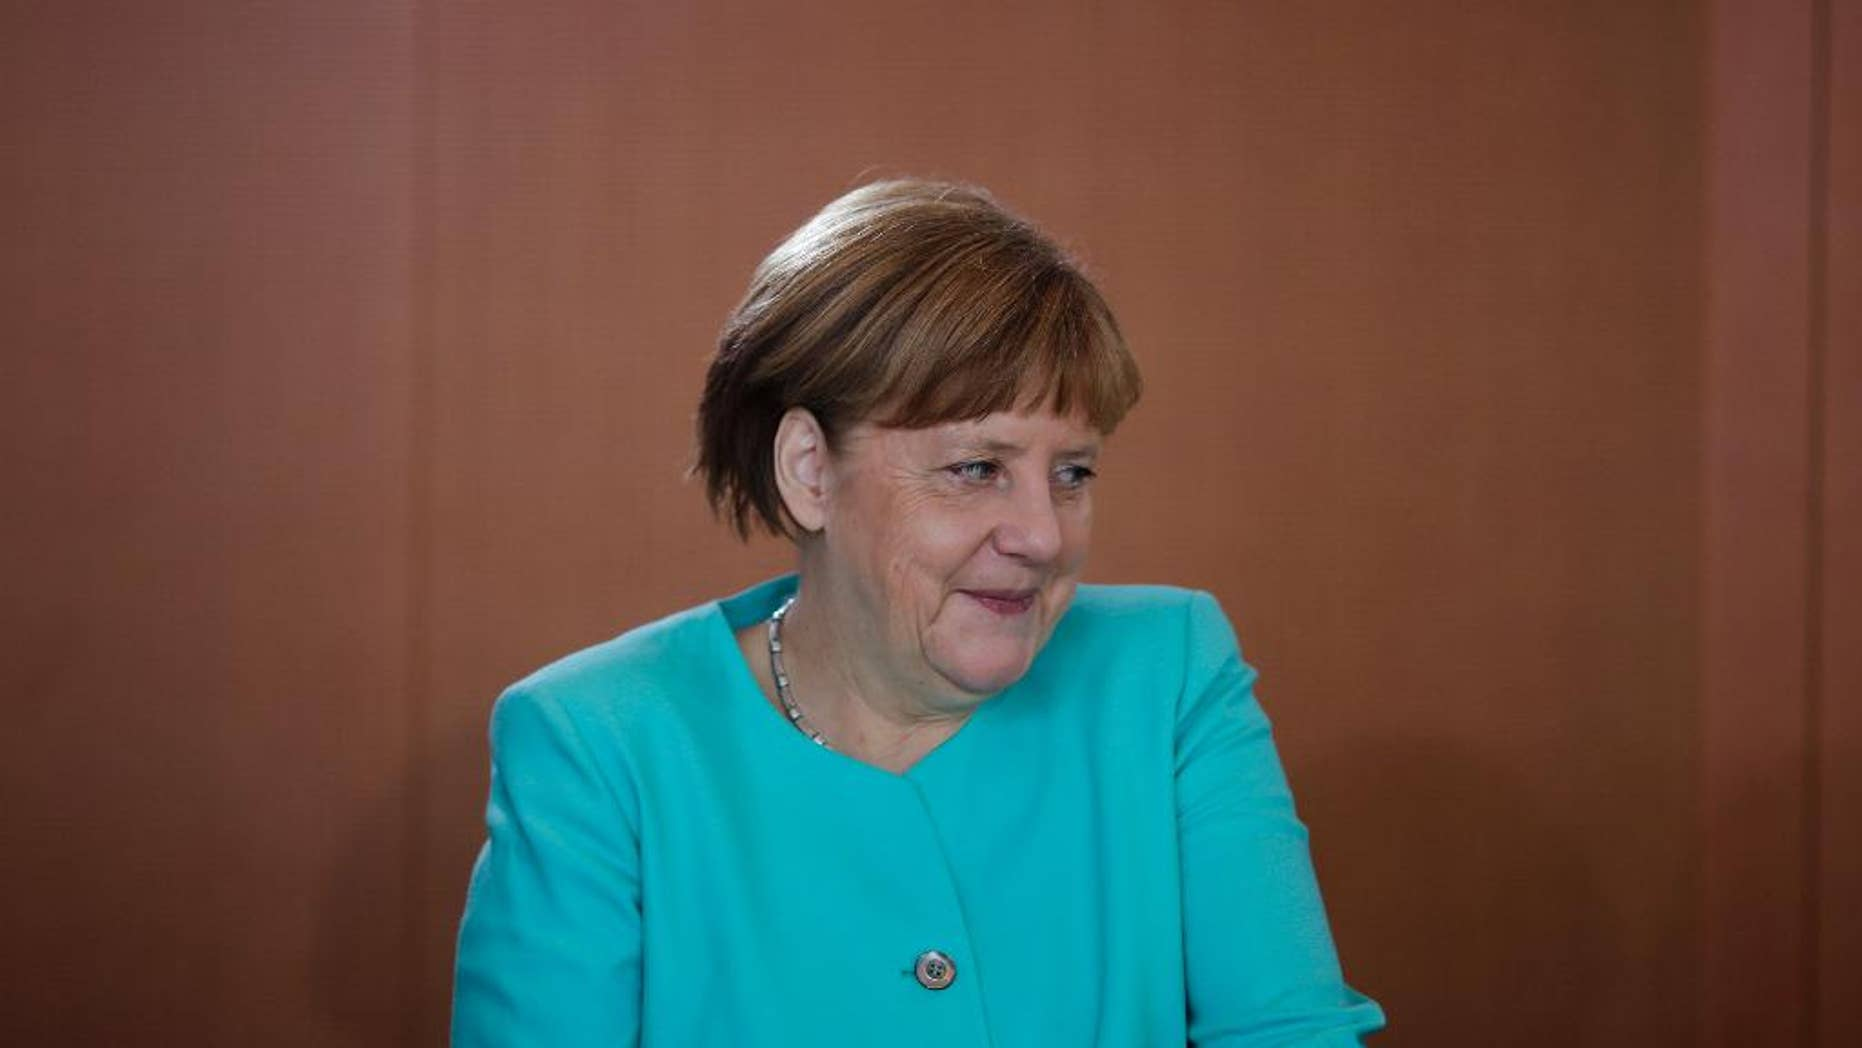 German Chancellor Angela Merkel arrives for the cabinet meeting of the German government at the chancellery in Berlin, Wednesday, June 8, 2016. (AP Photo/Markus Schreiber)